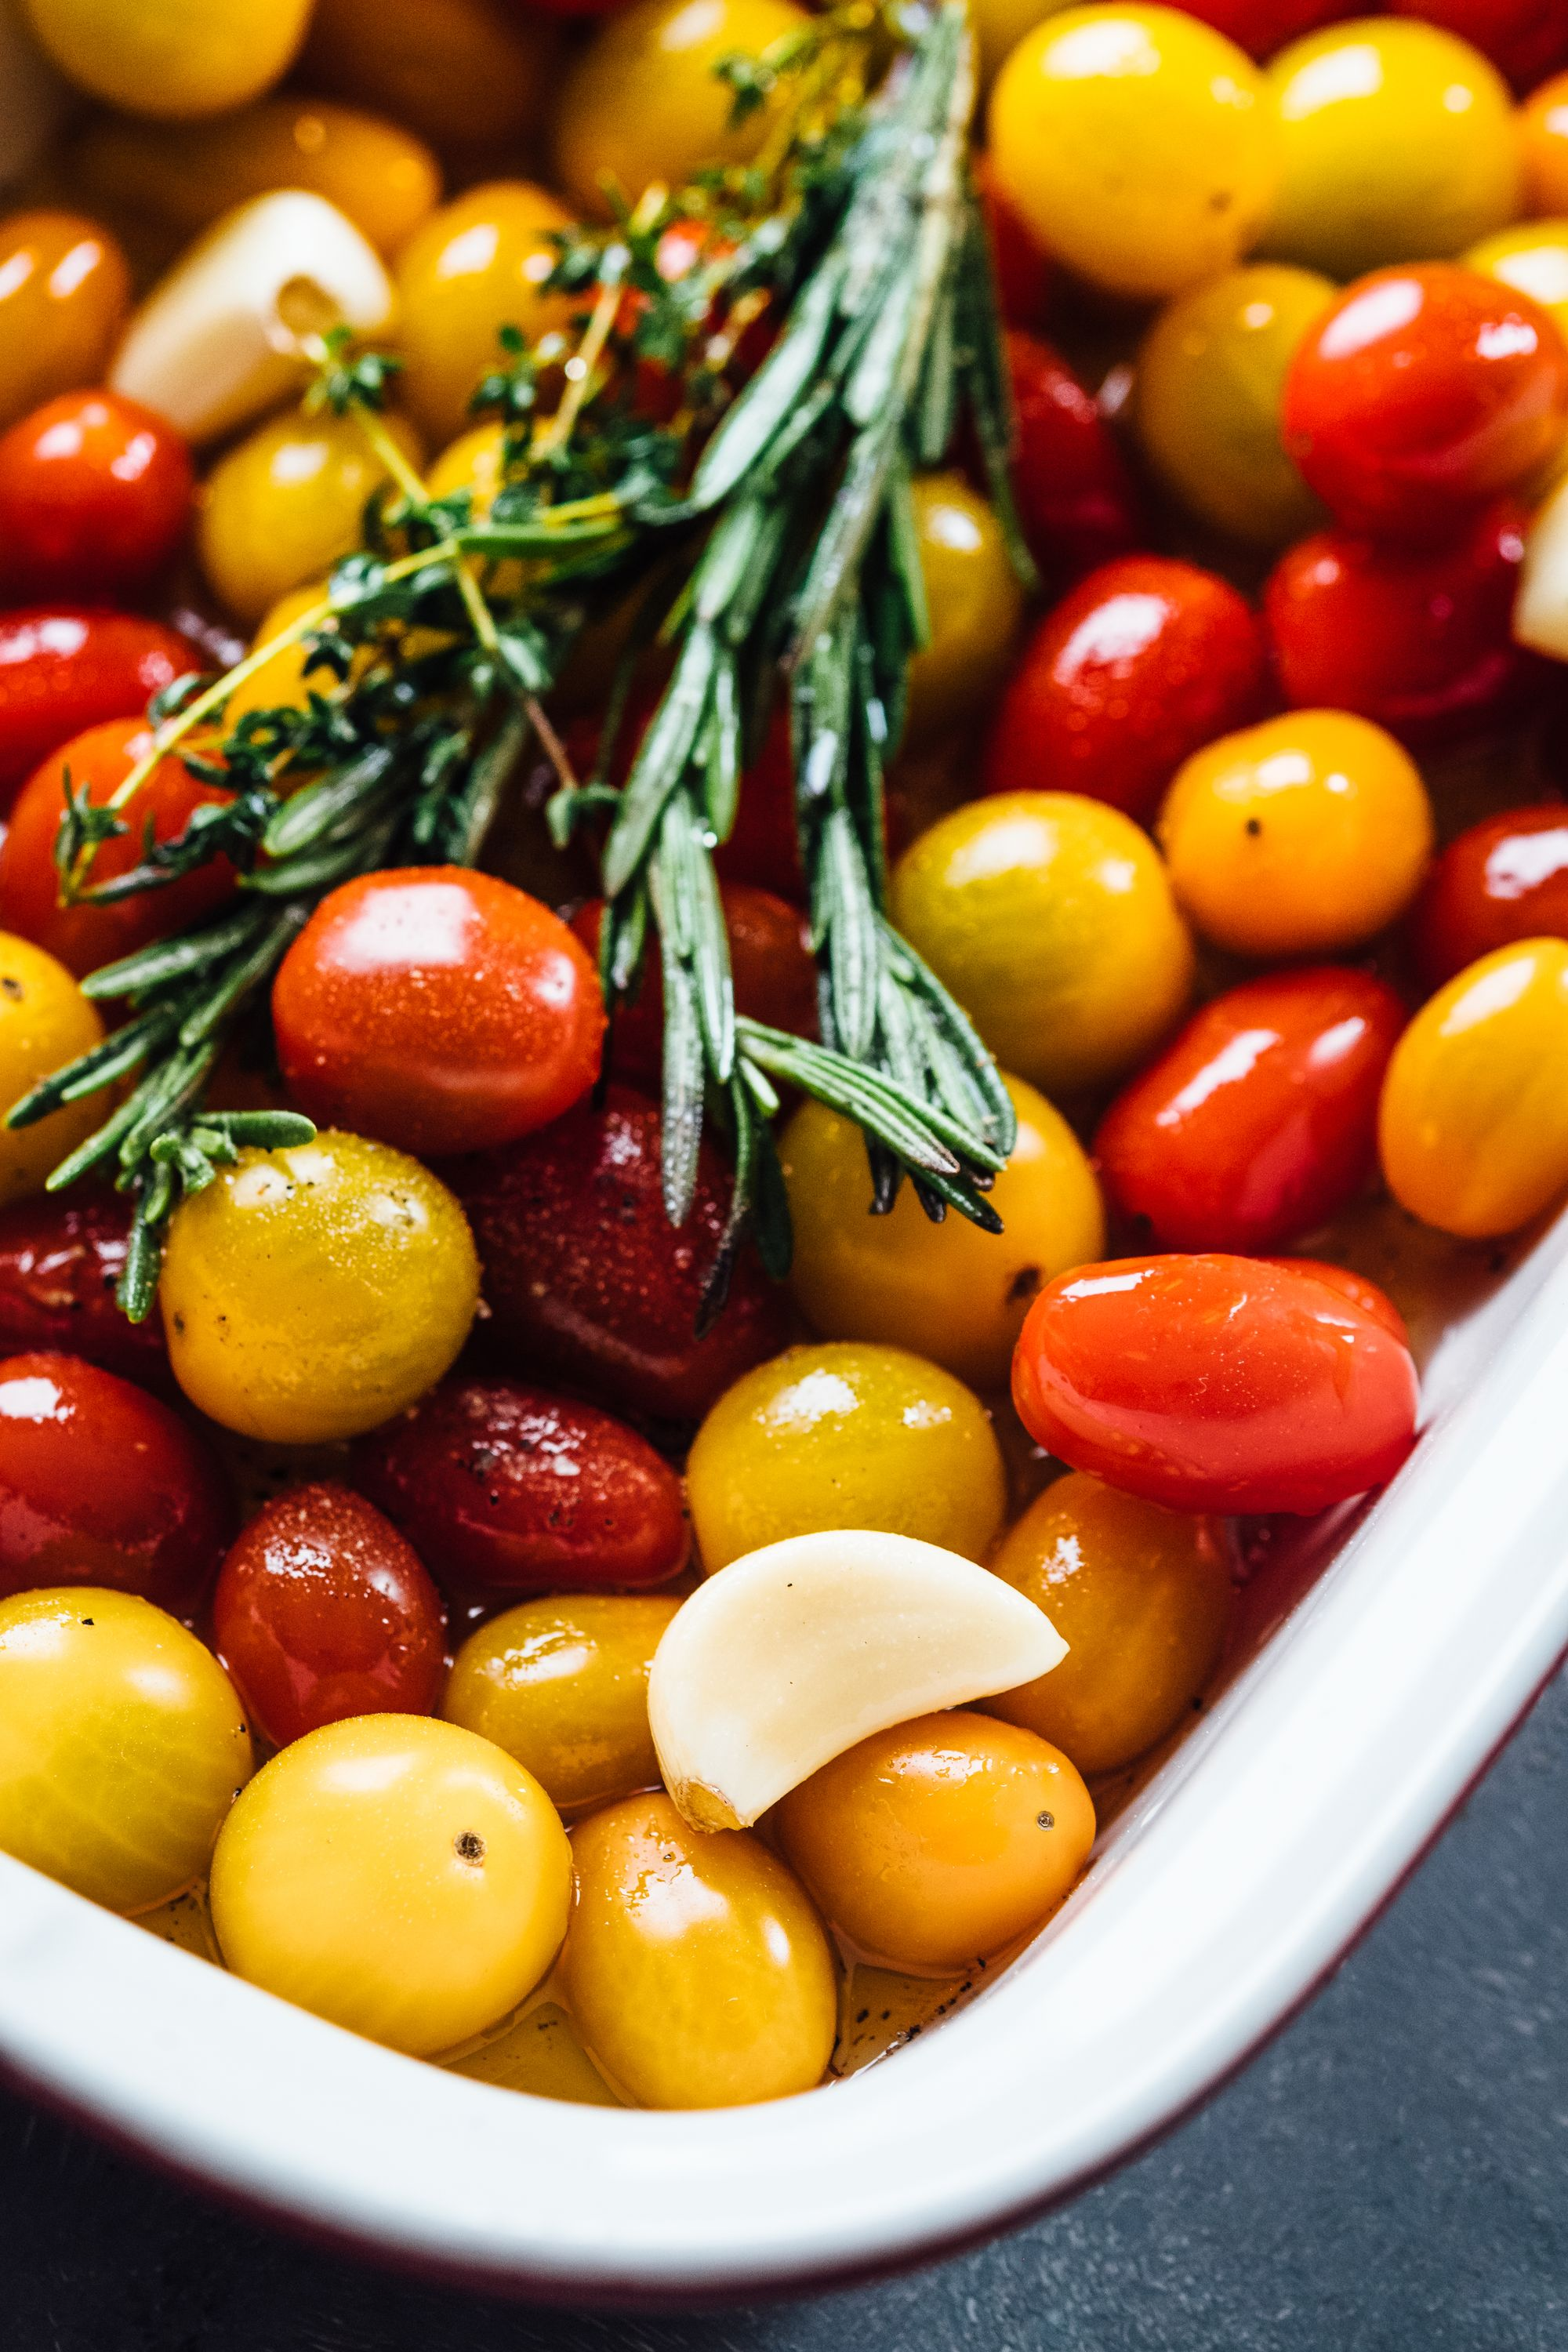 Tomato confit is easy to make from scratch